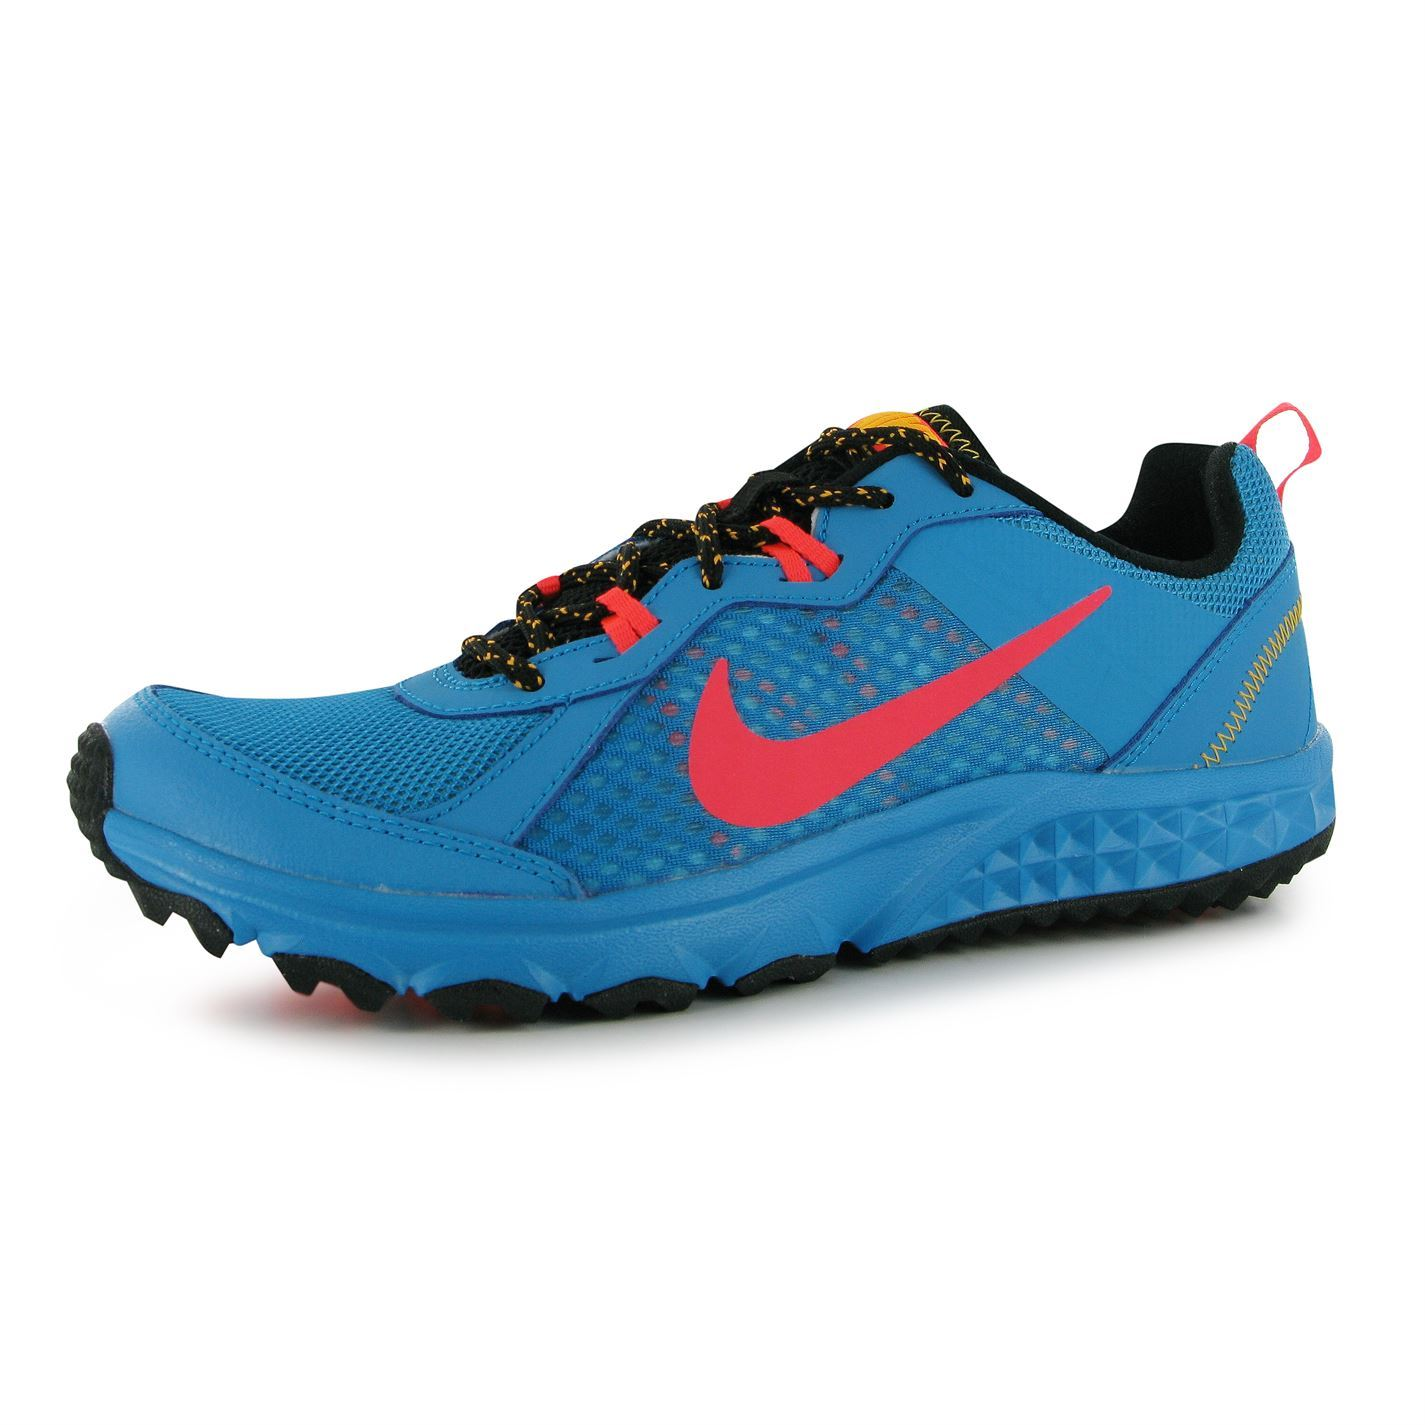 Original Nike Trail Running Shoes Women With Fantastic Images U2013 Playzoa.com